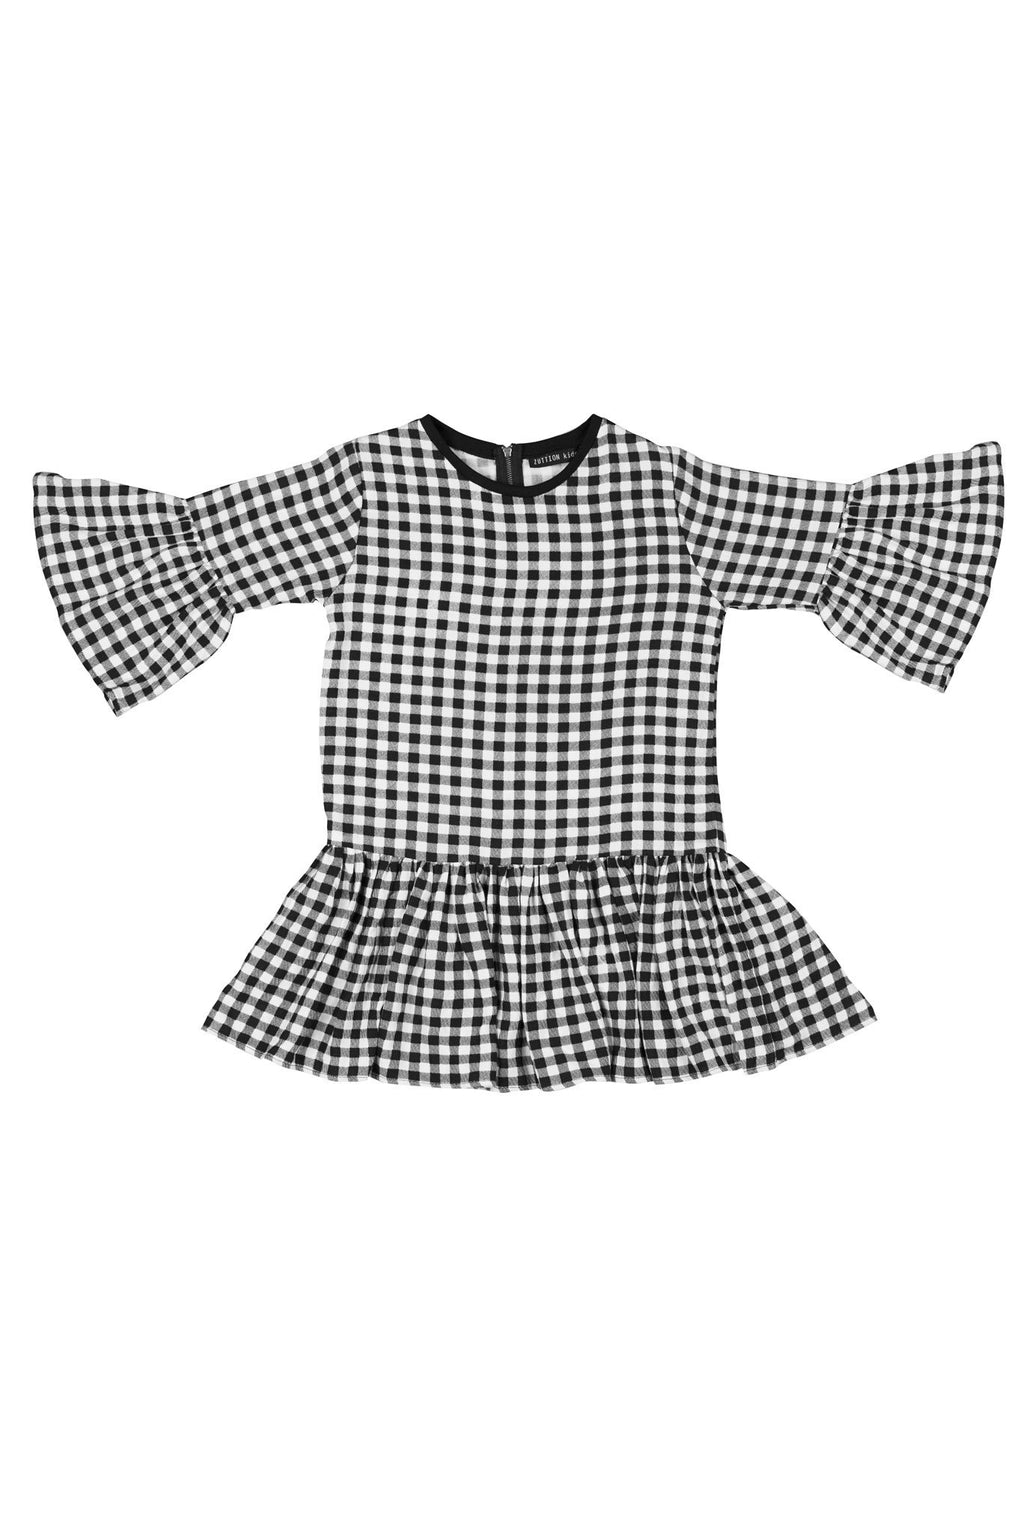 Yasmin Gingham Dress Black/White - Zuttion